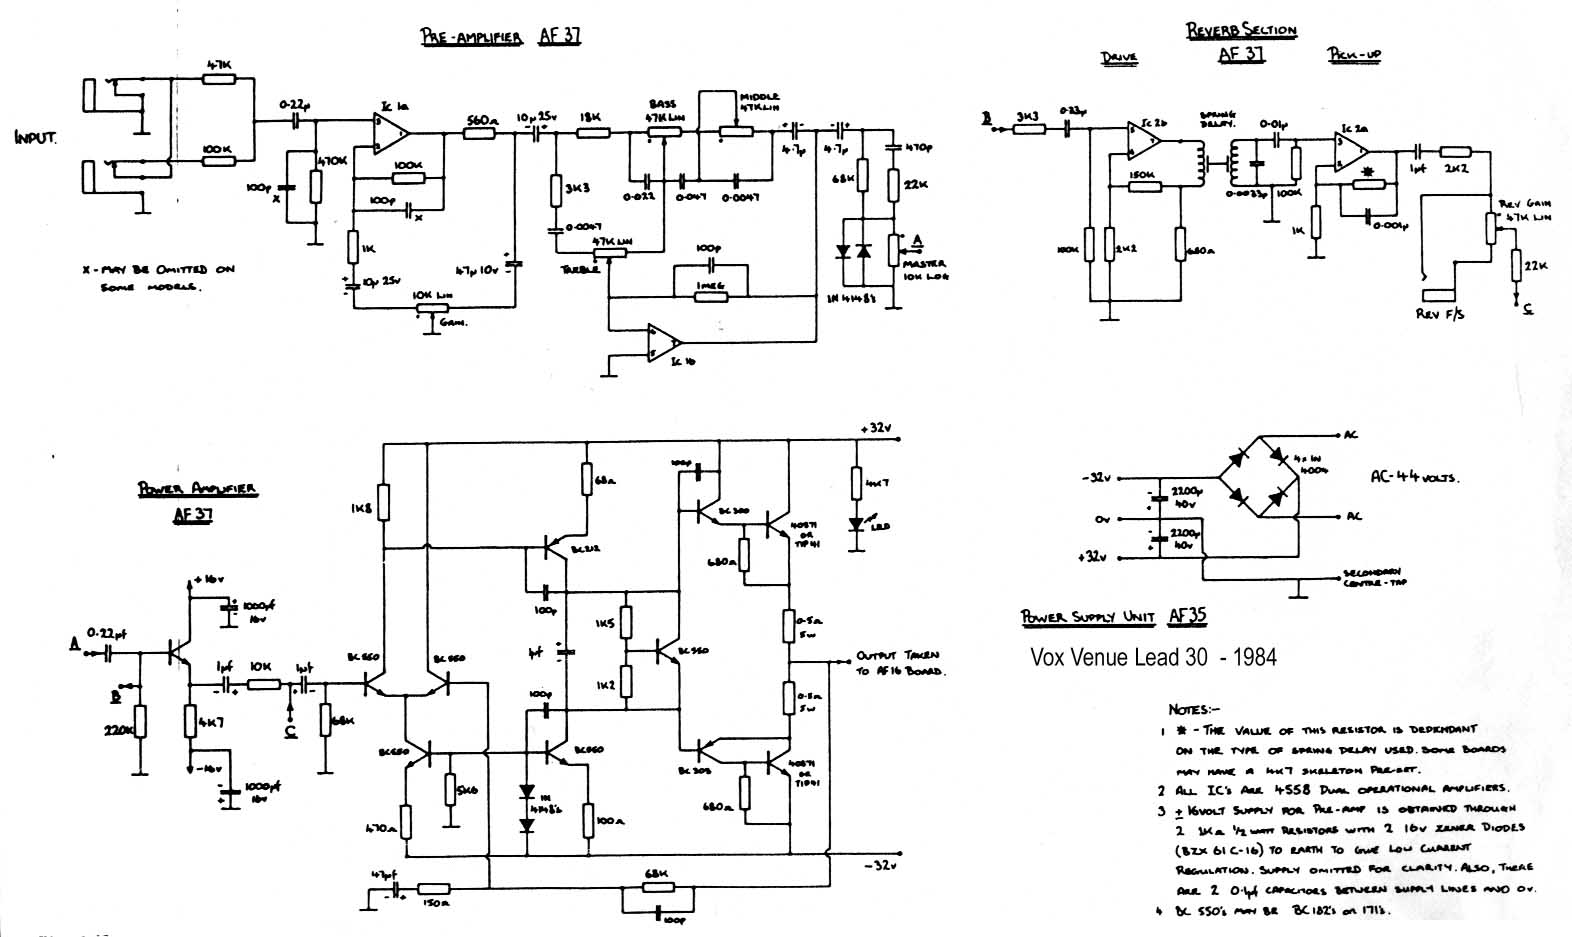 Vox Vintage Circuit Diagrams Guitar Amp Schematics Get Free Image About Wiring Diagram Venue Lead 30 1984 Download